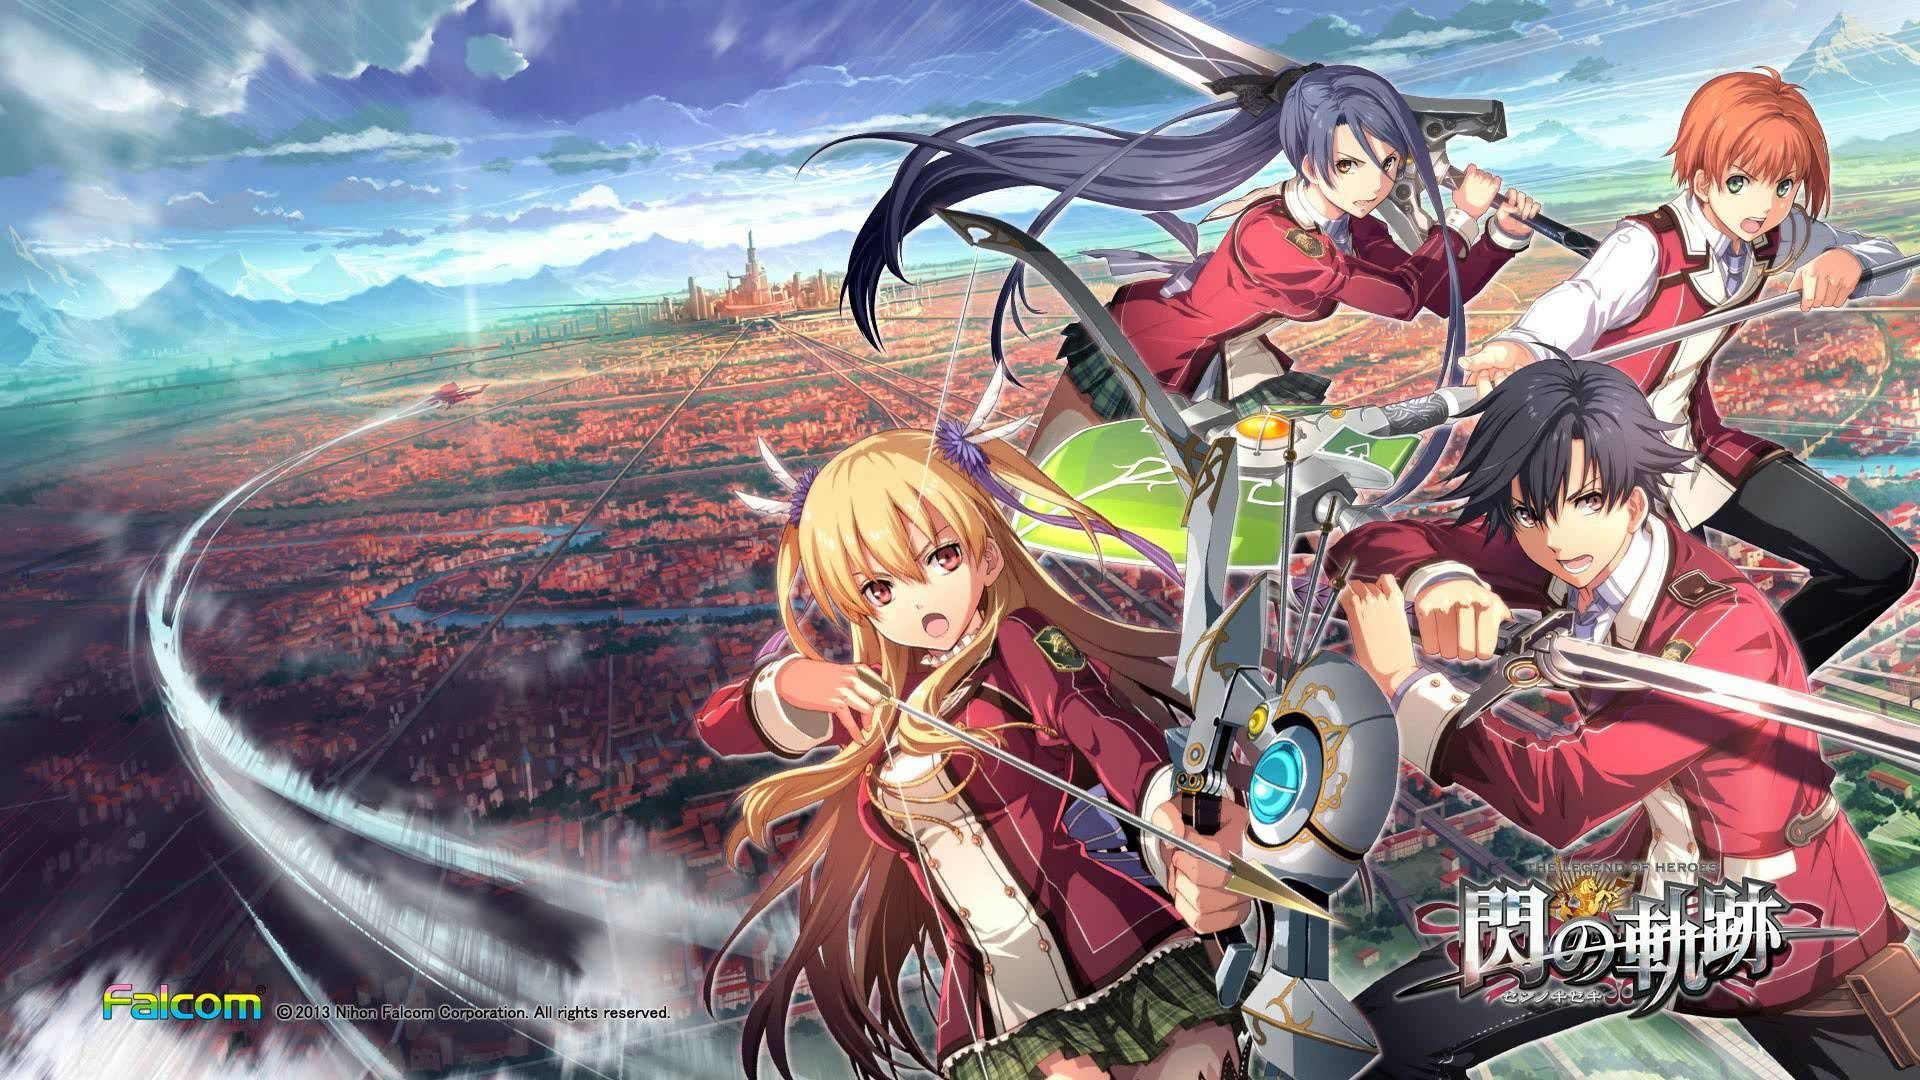 The Legend Of Heroes Trails Of Cold Steel Wallpaper Hd With